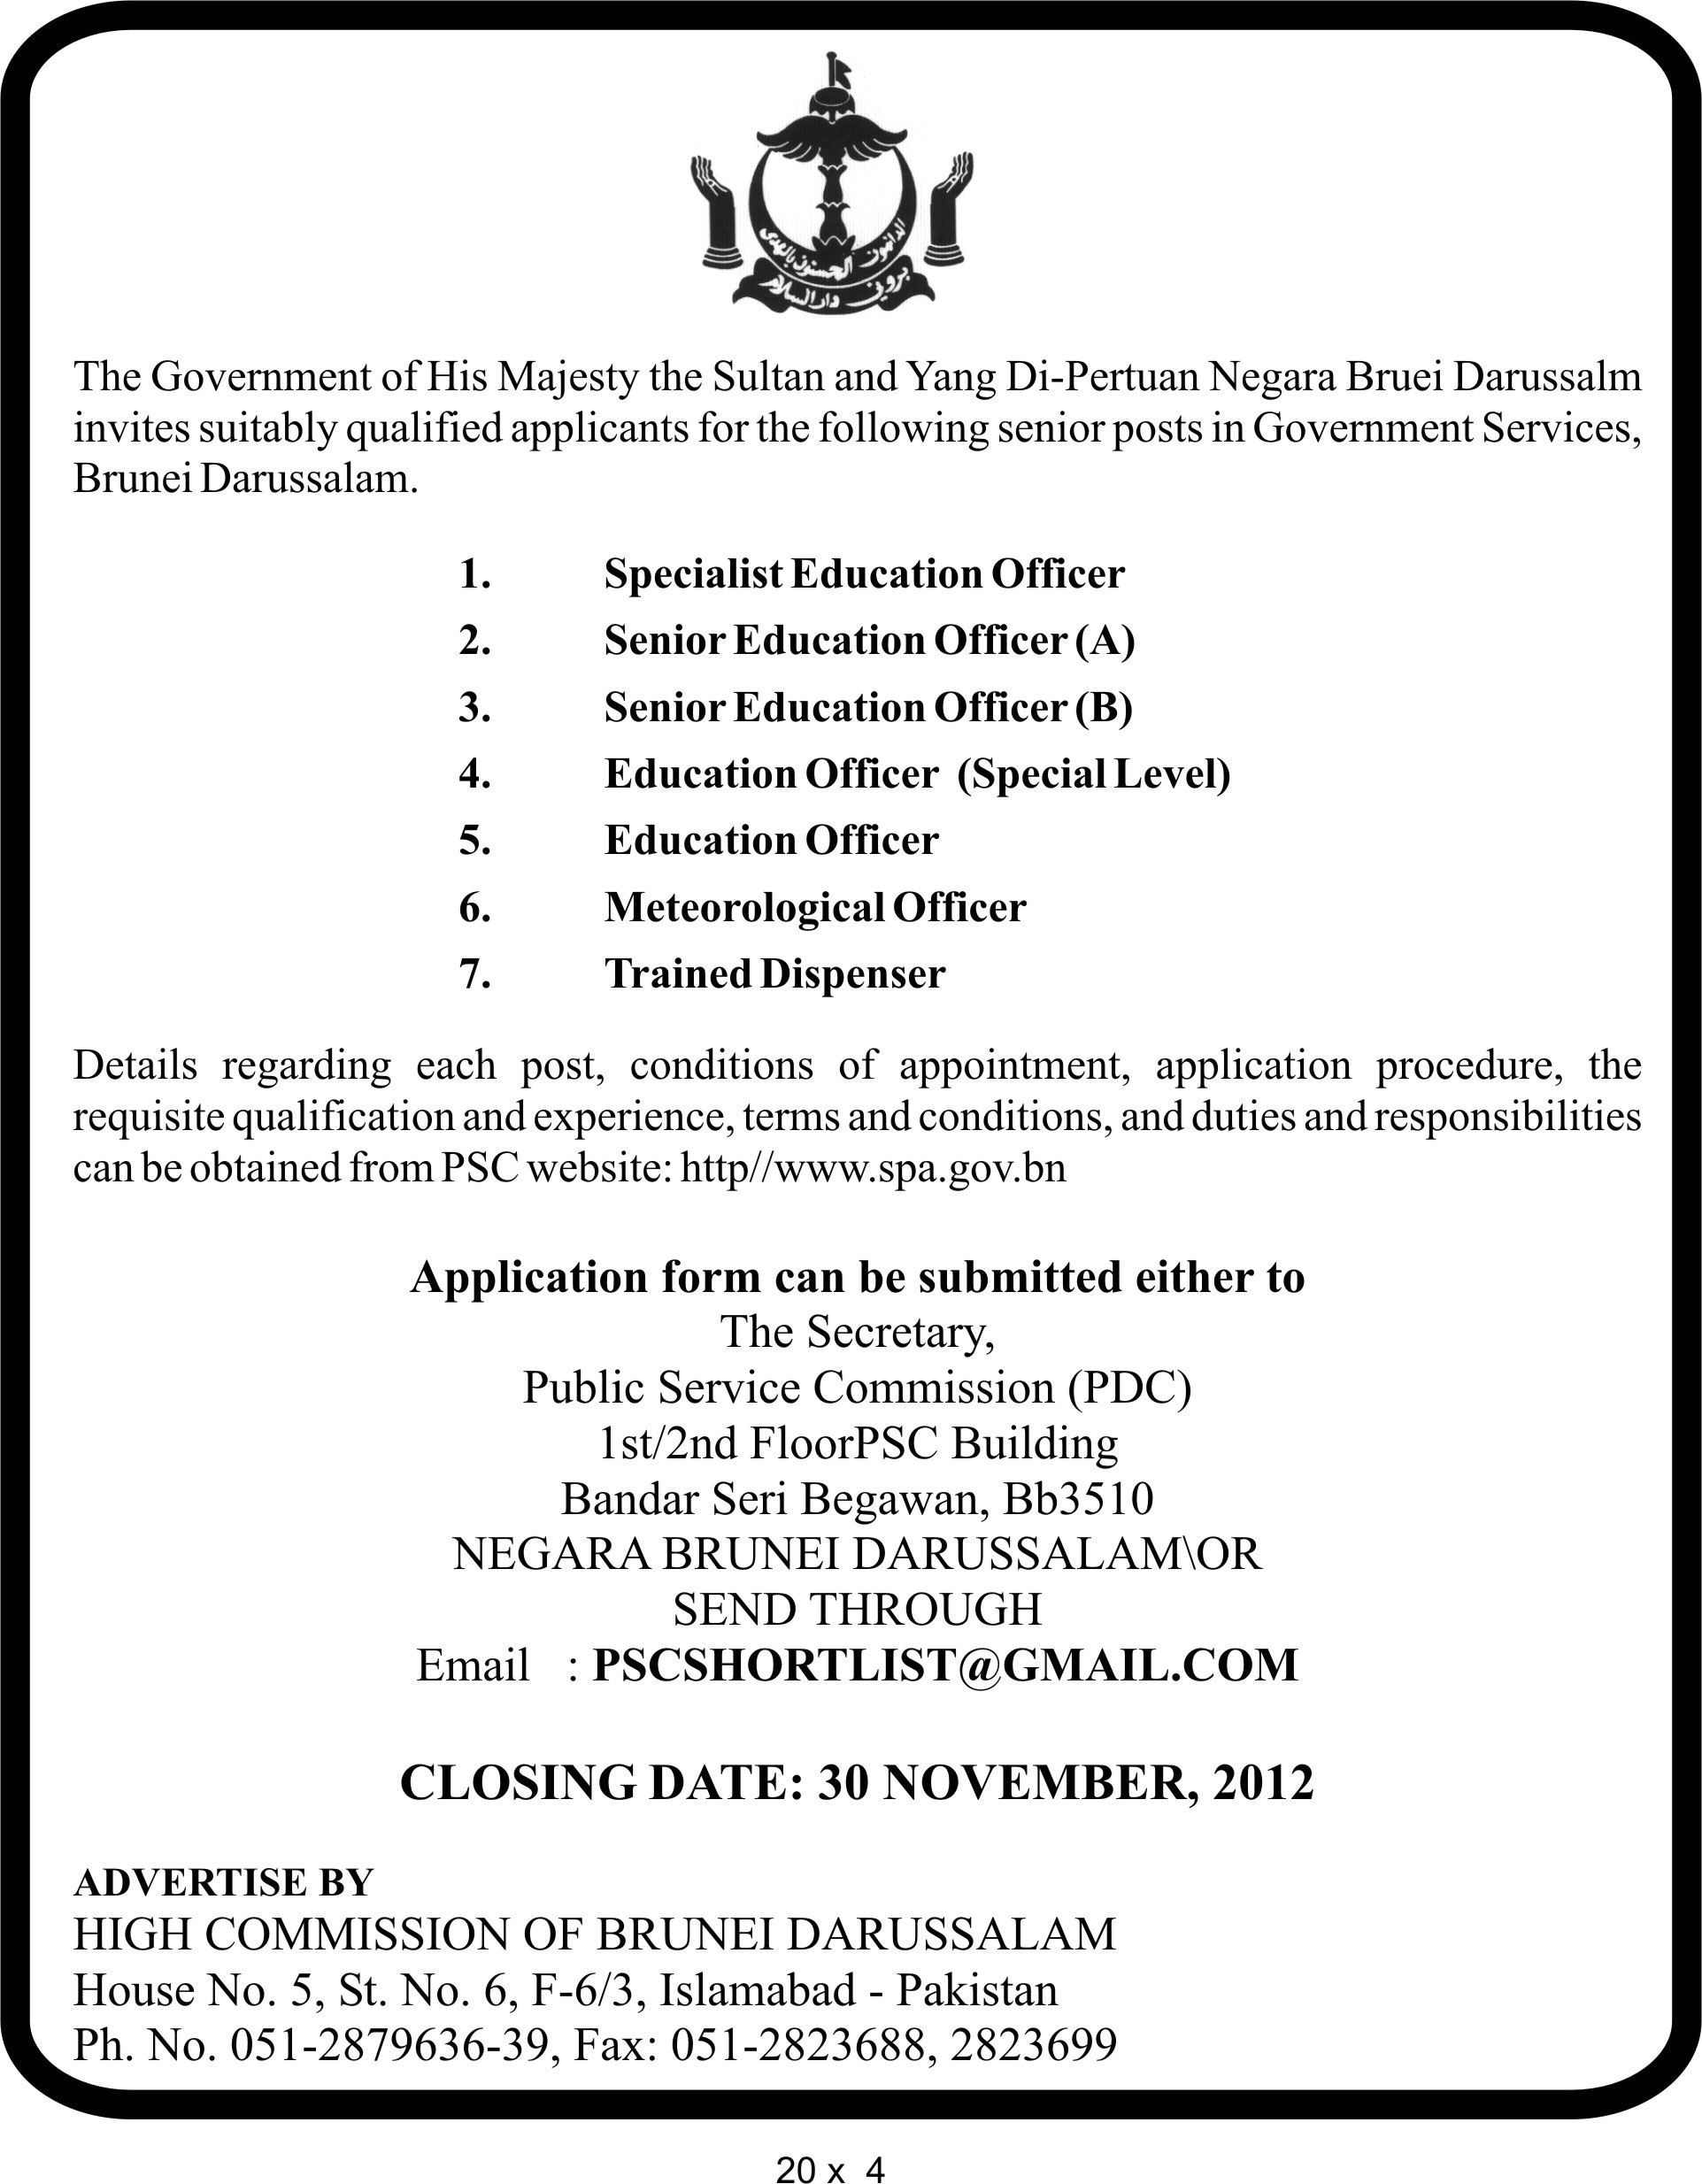 Brunei Darussalam Government Jobs